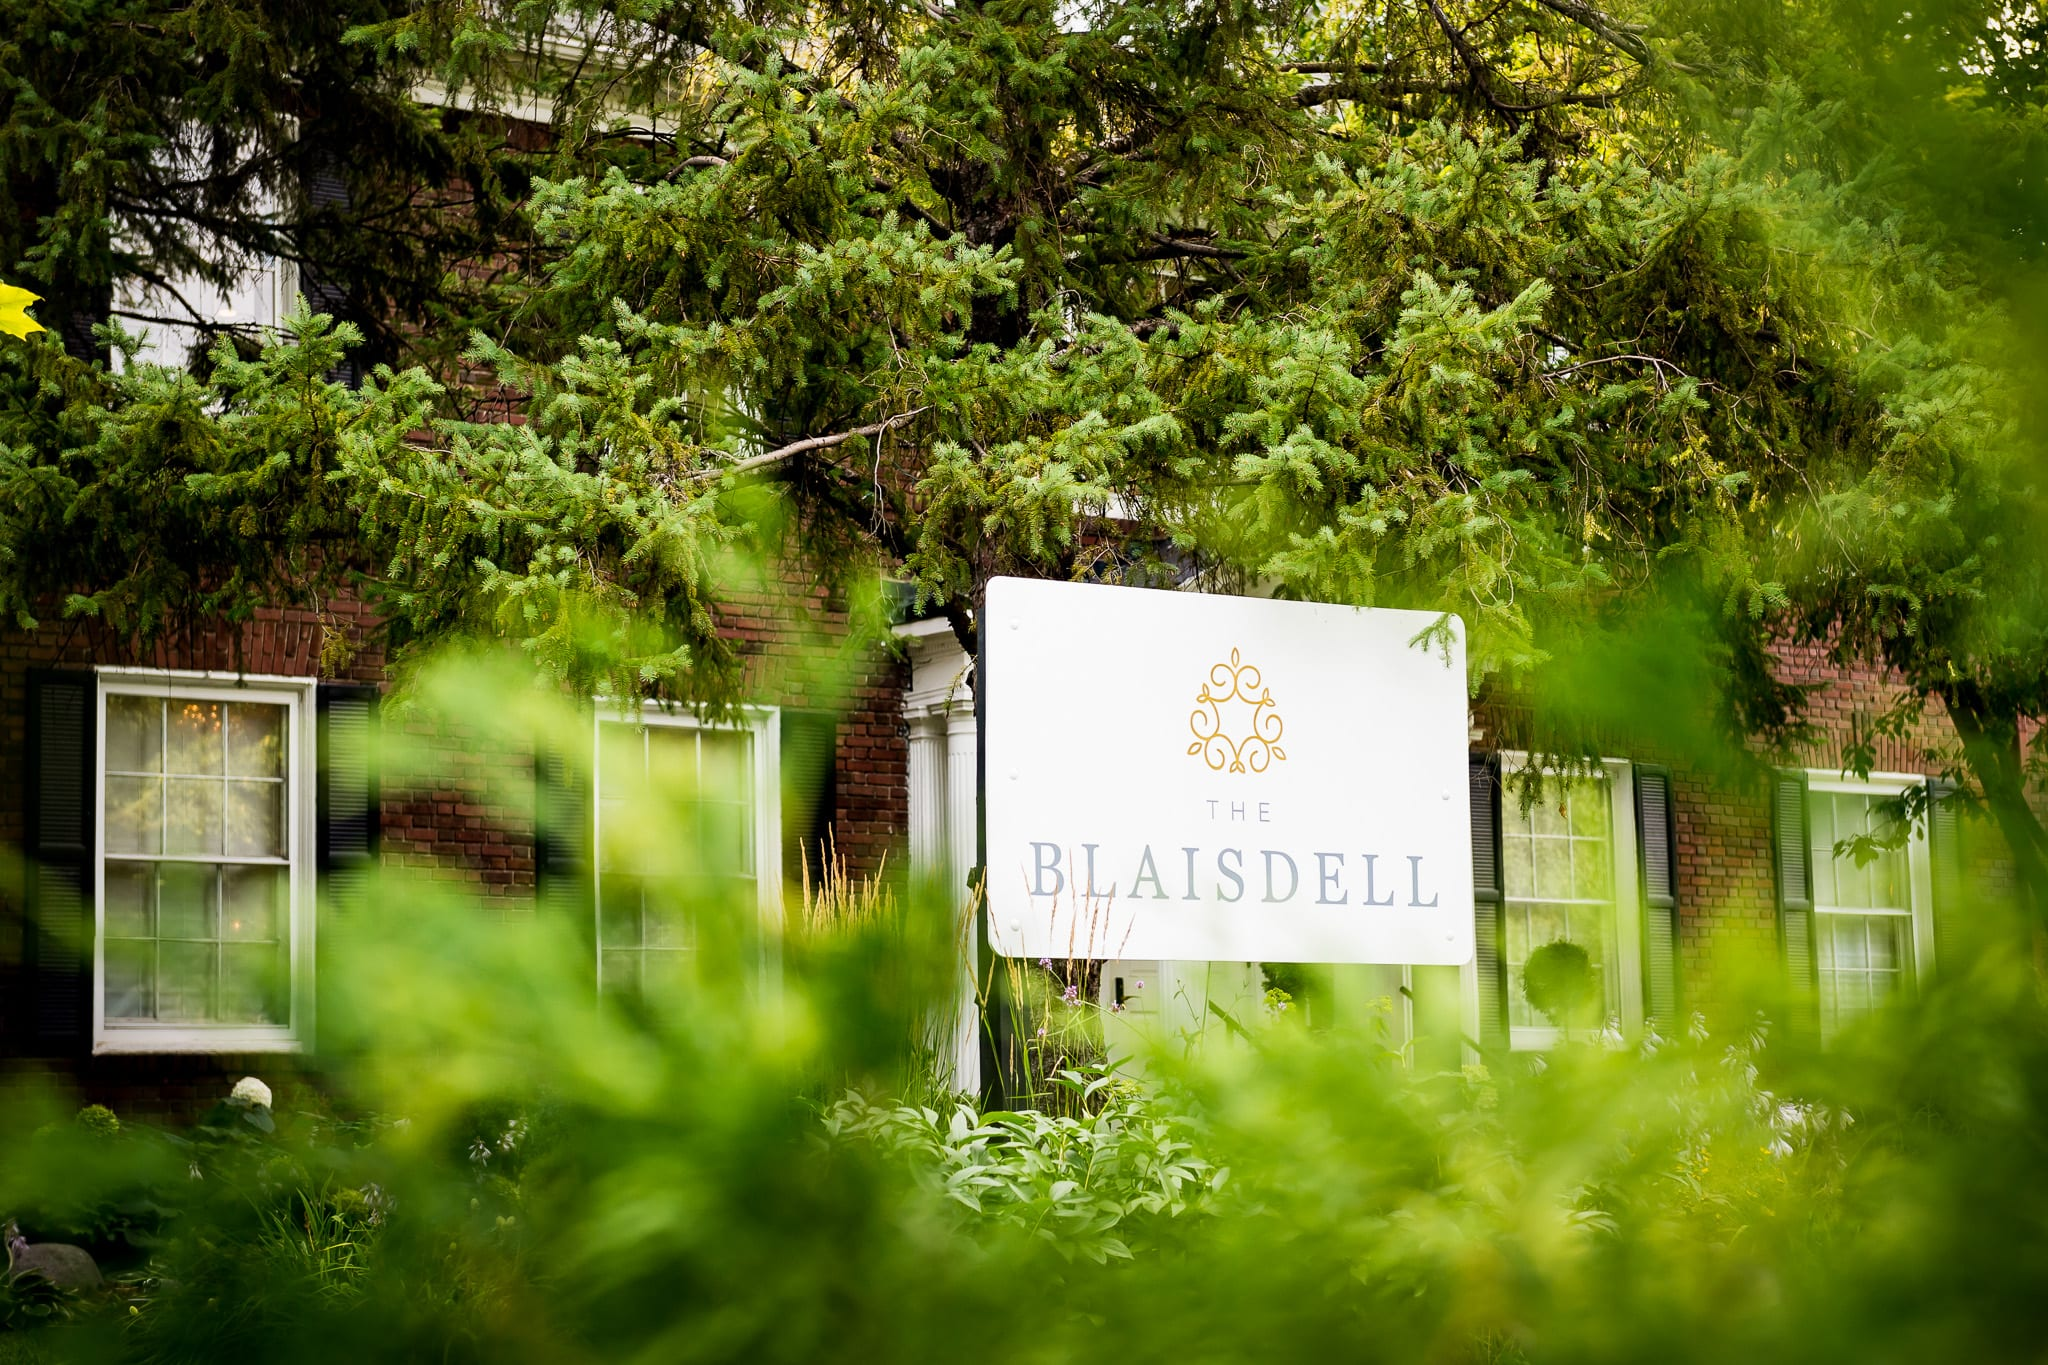 The Blaisdell sign in front of the main wedding venue building in Minneapolis